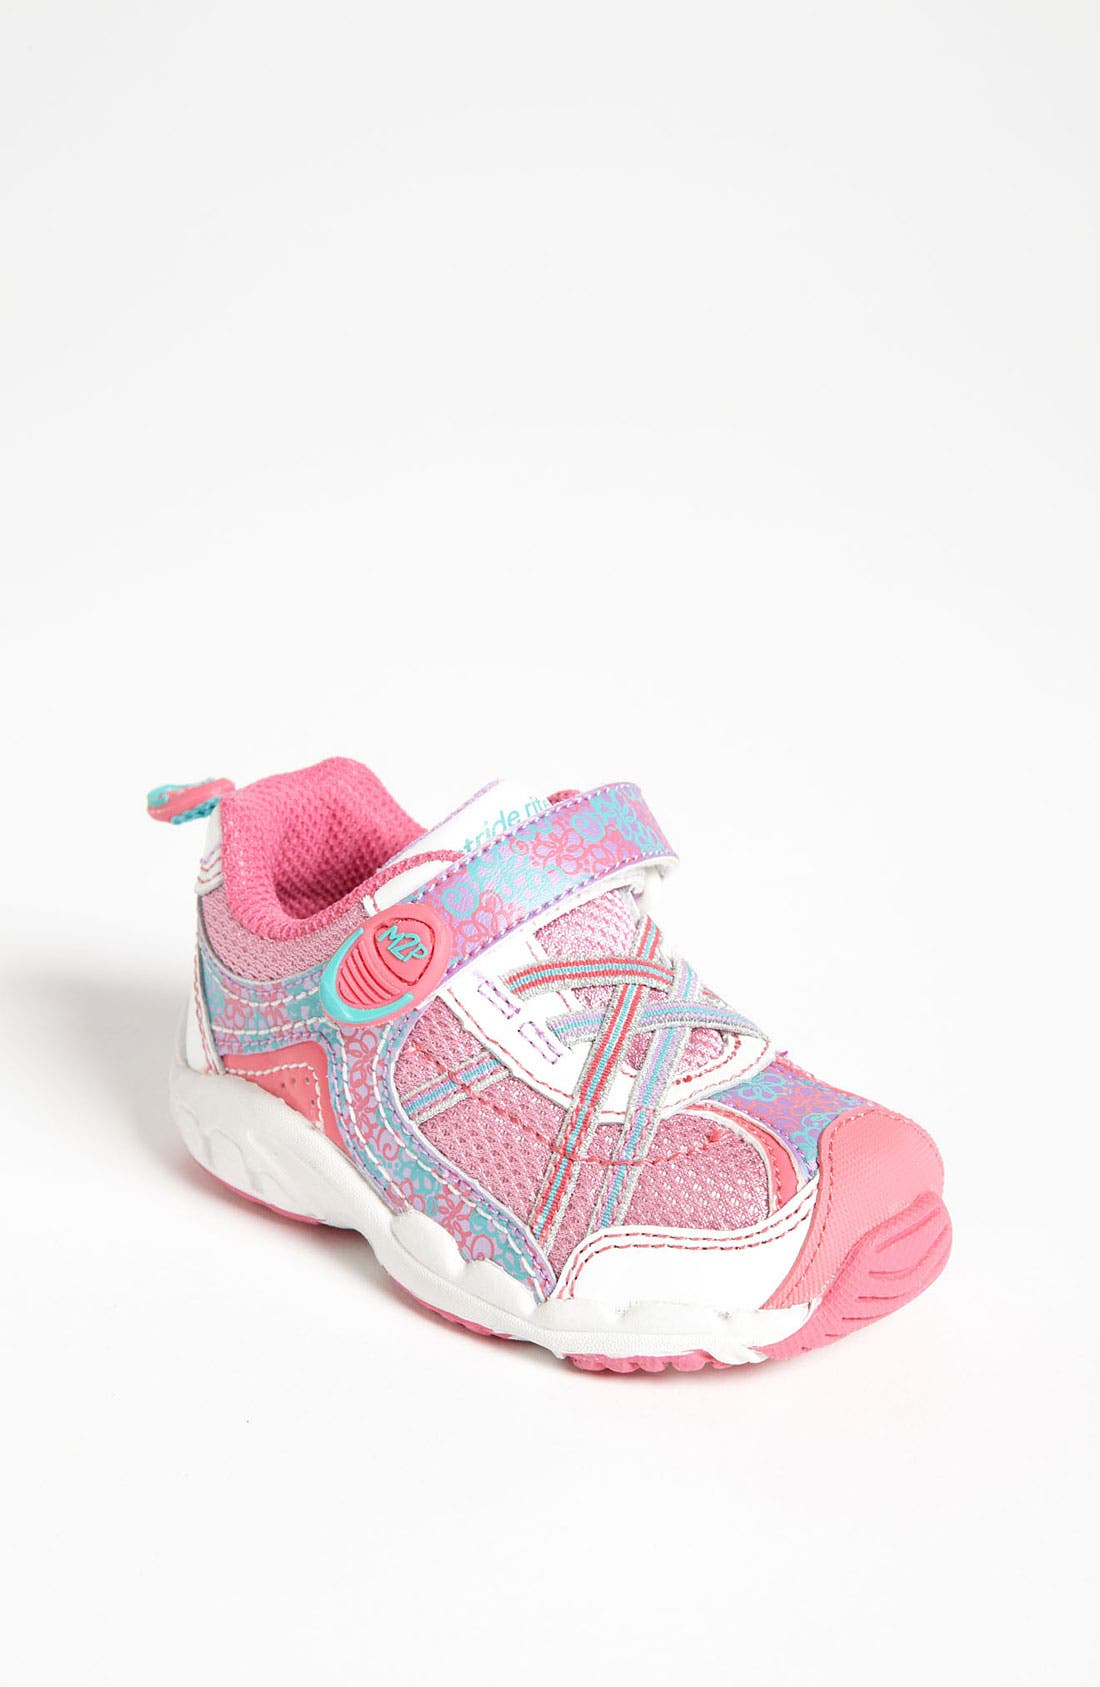 Main Image - Stride Rite 'Kathryn' Sneaker (Toddler)